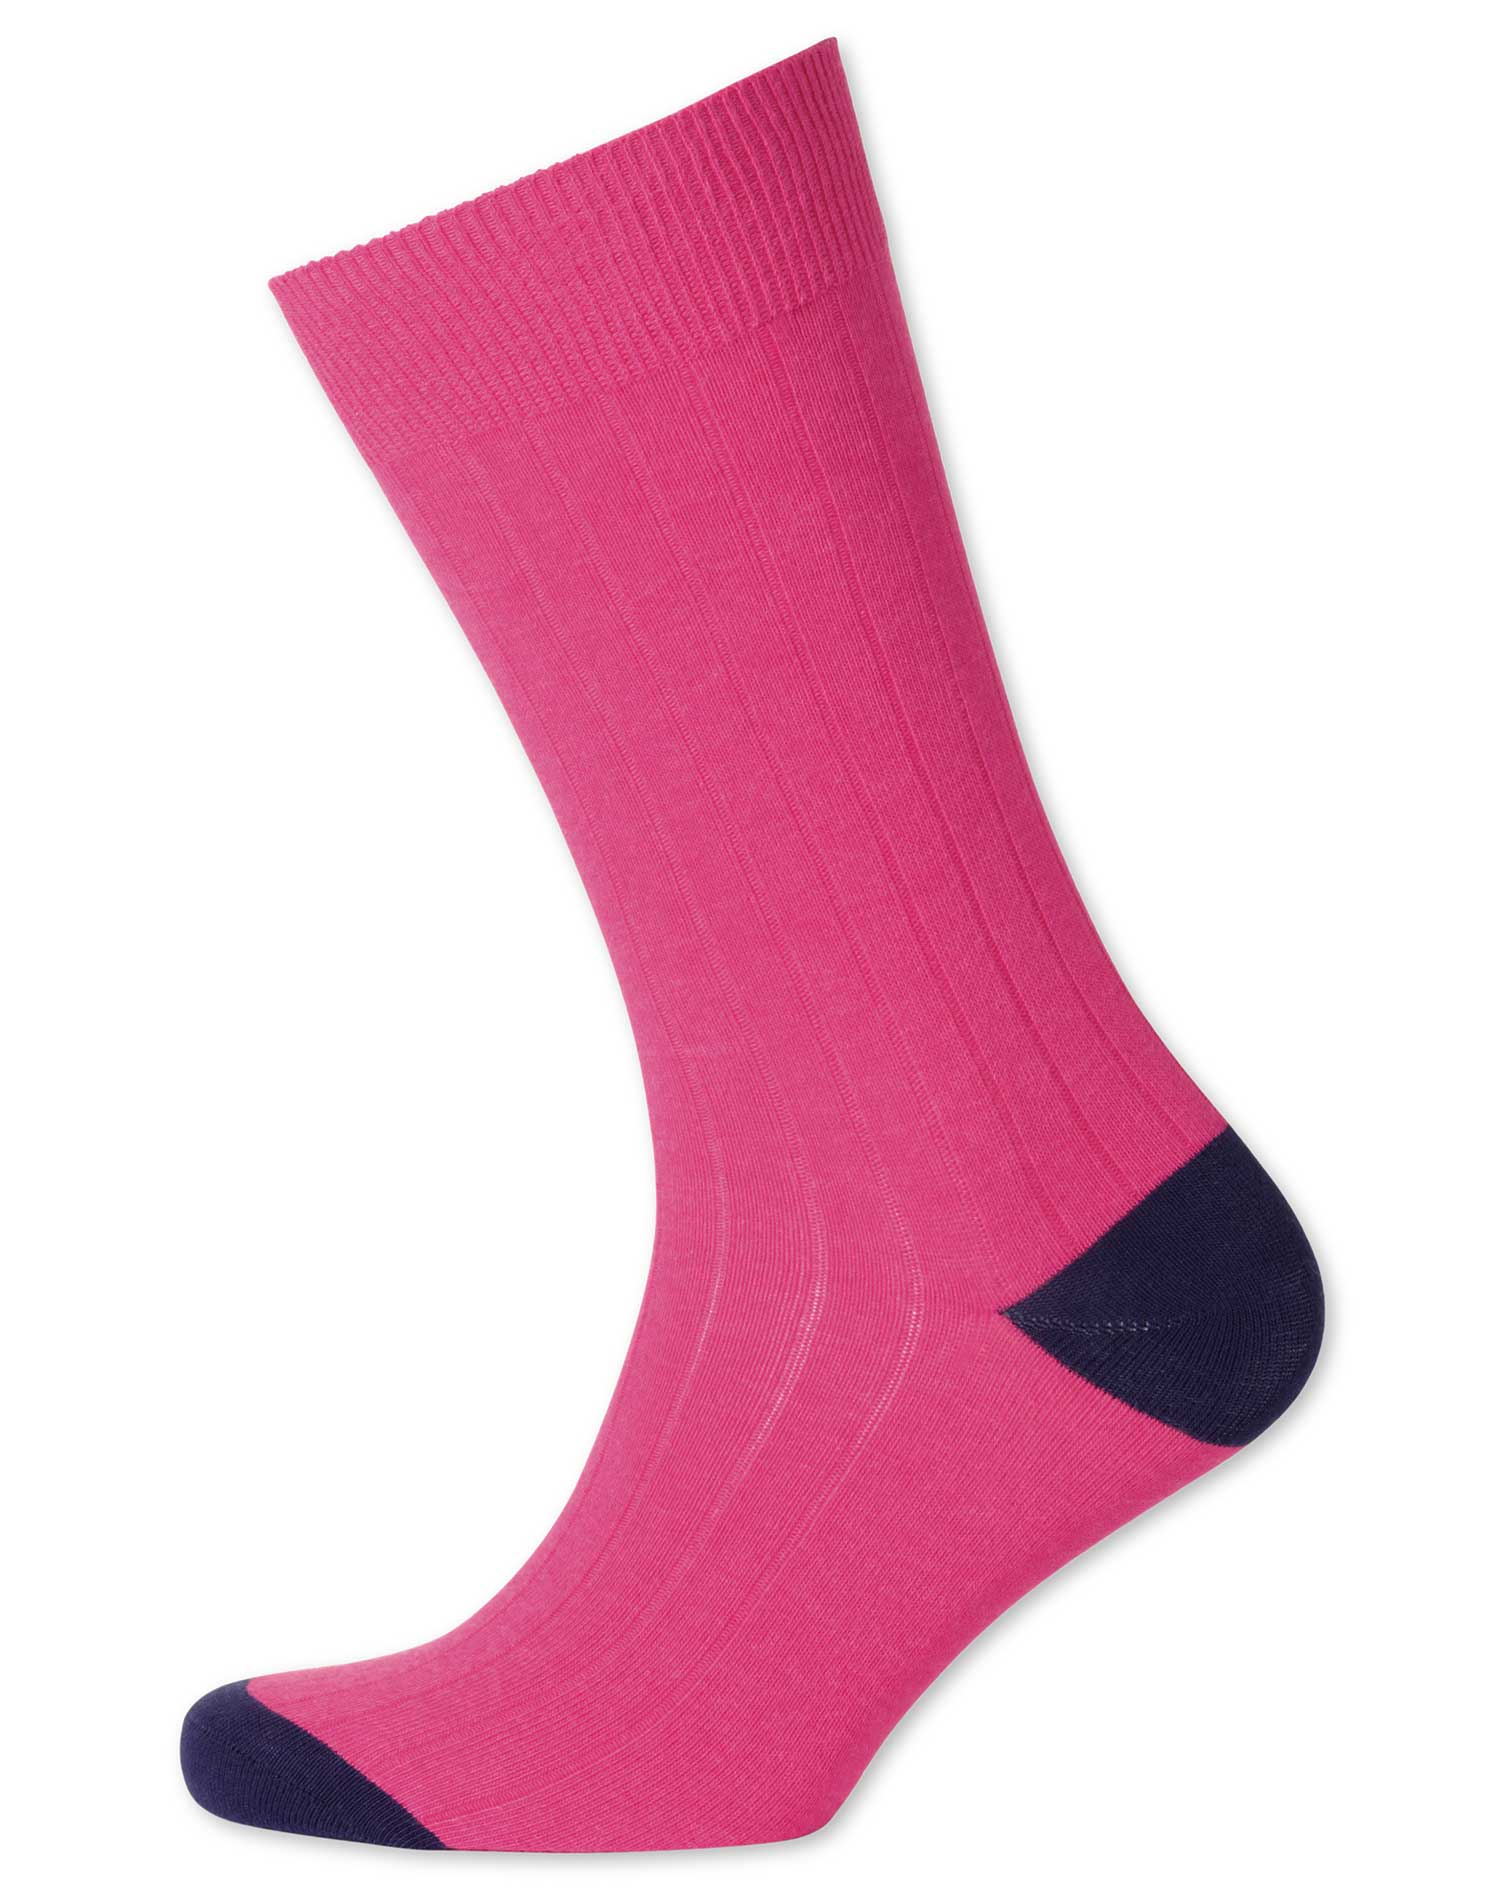 Pink Cotton Rib Socks Size Large by Charles Tyrwhitt